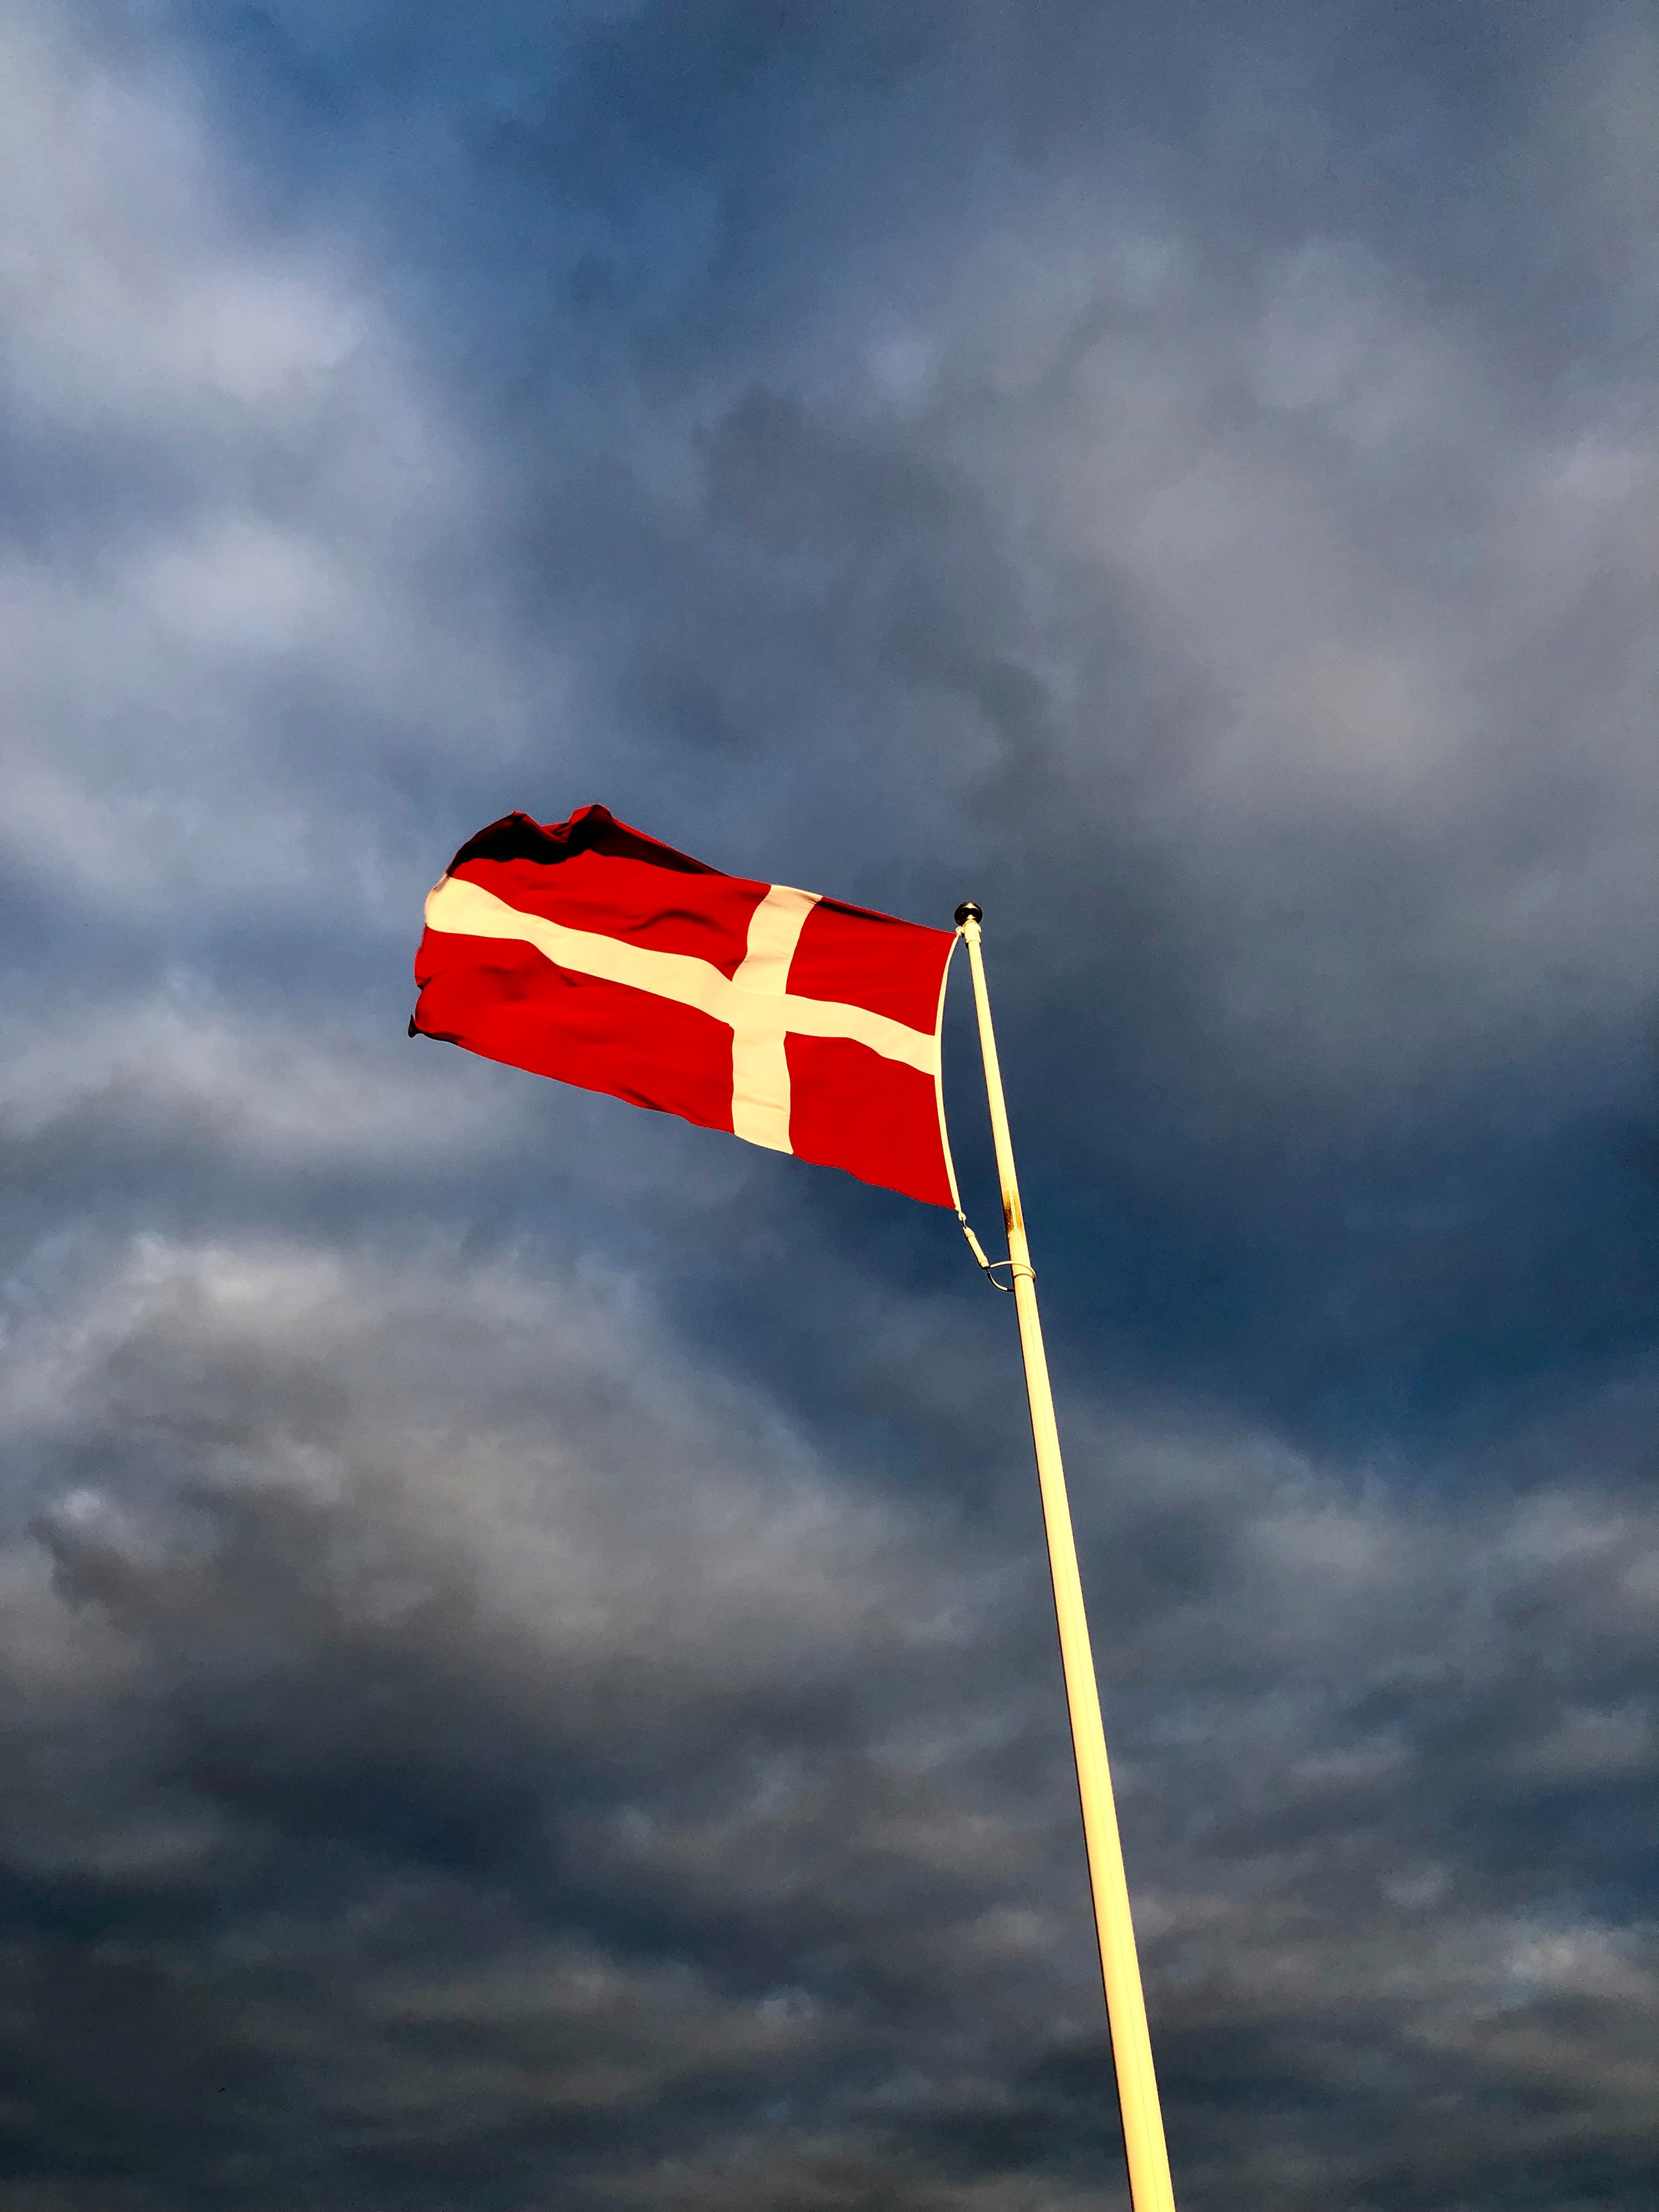 10 Facts About Denmark article. Image of Danish flag.jpg